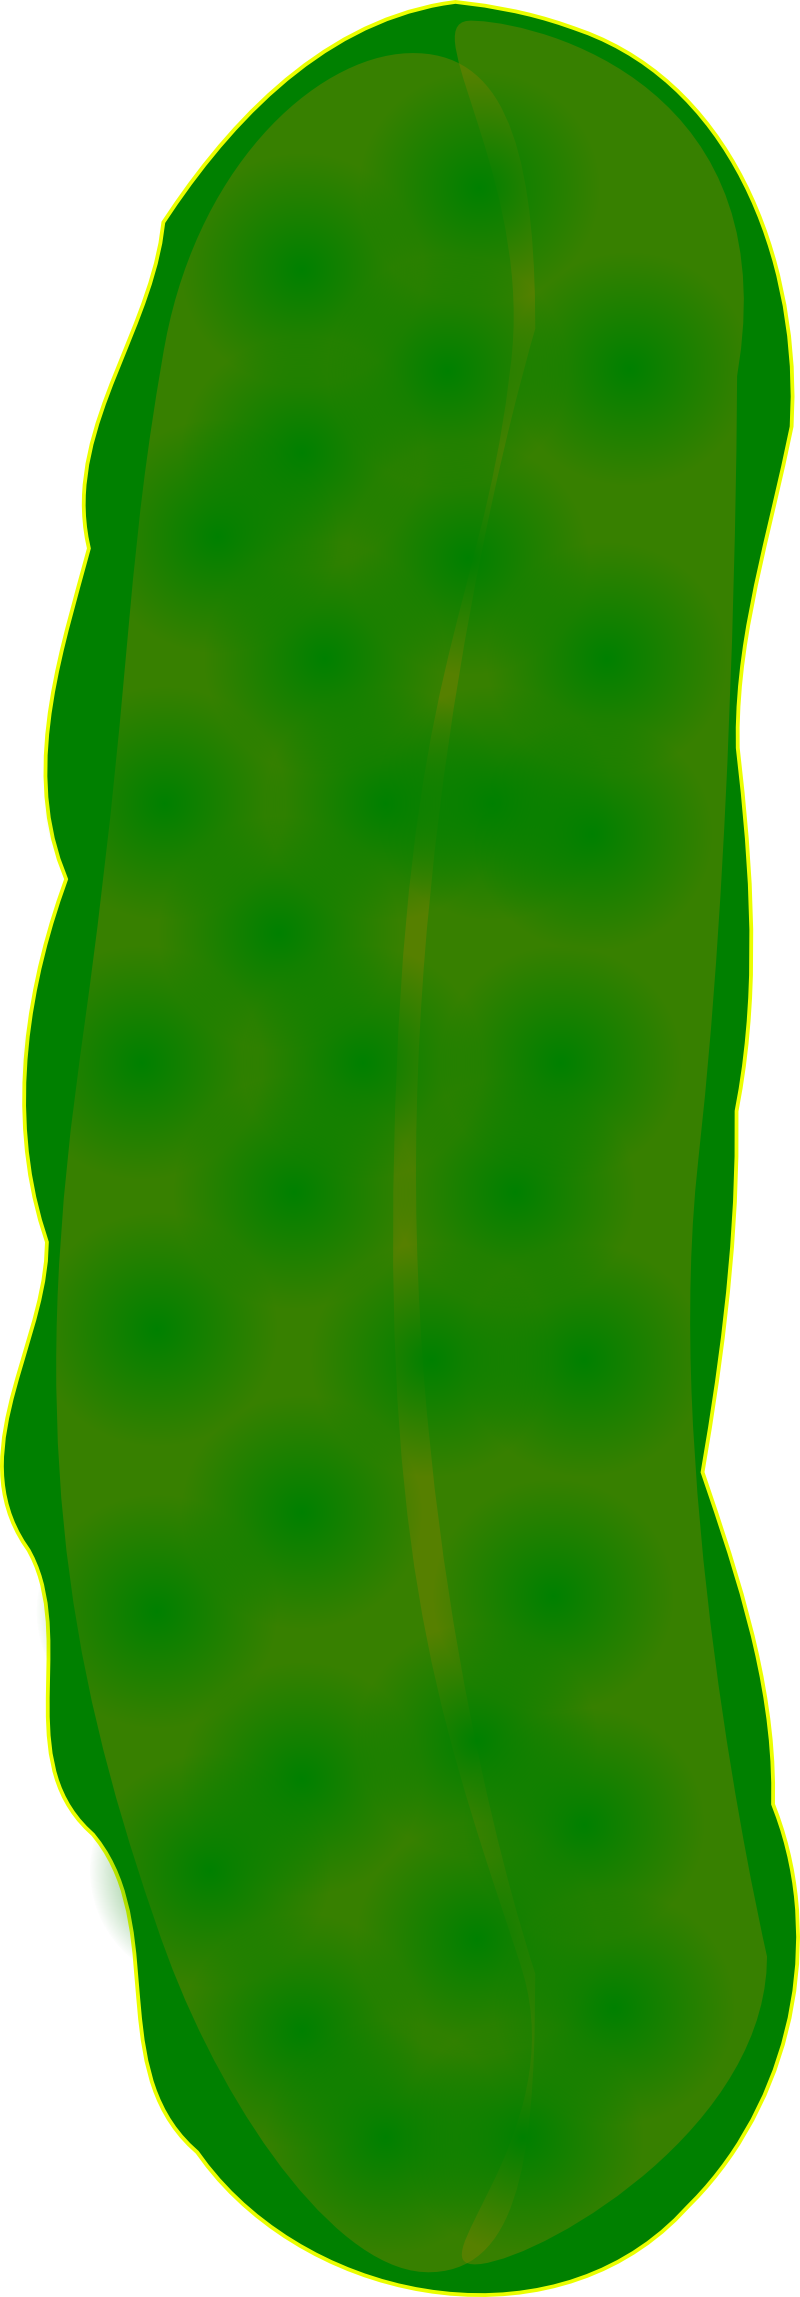 Pickle clipart. Free pickles cliparts download